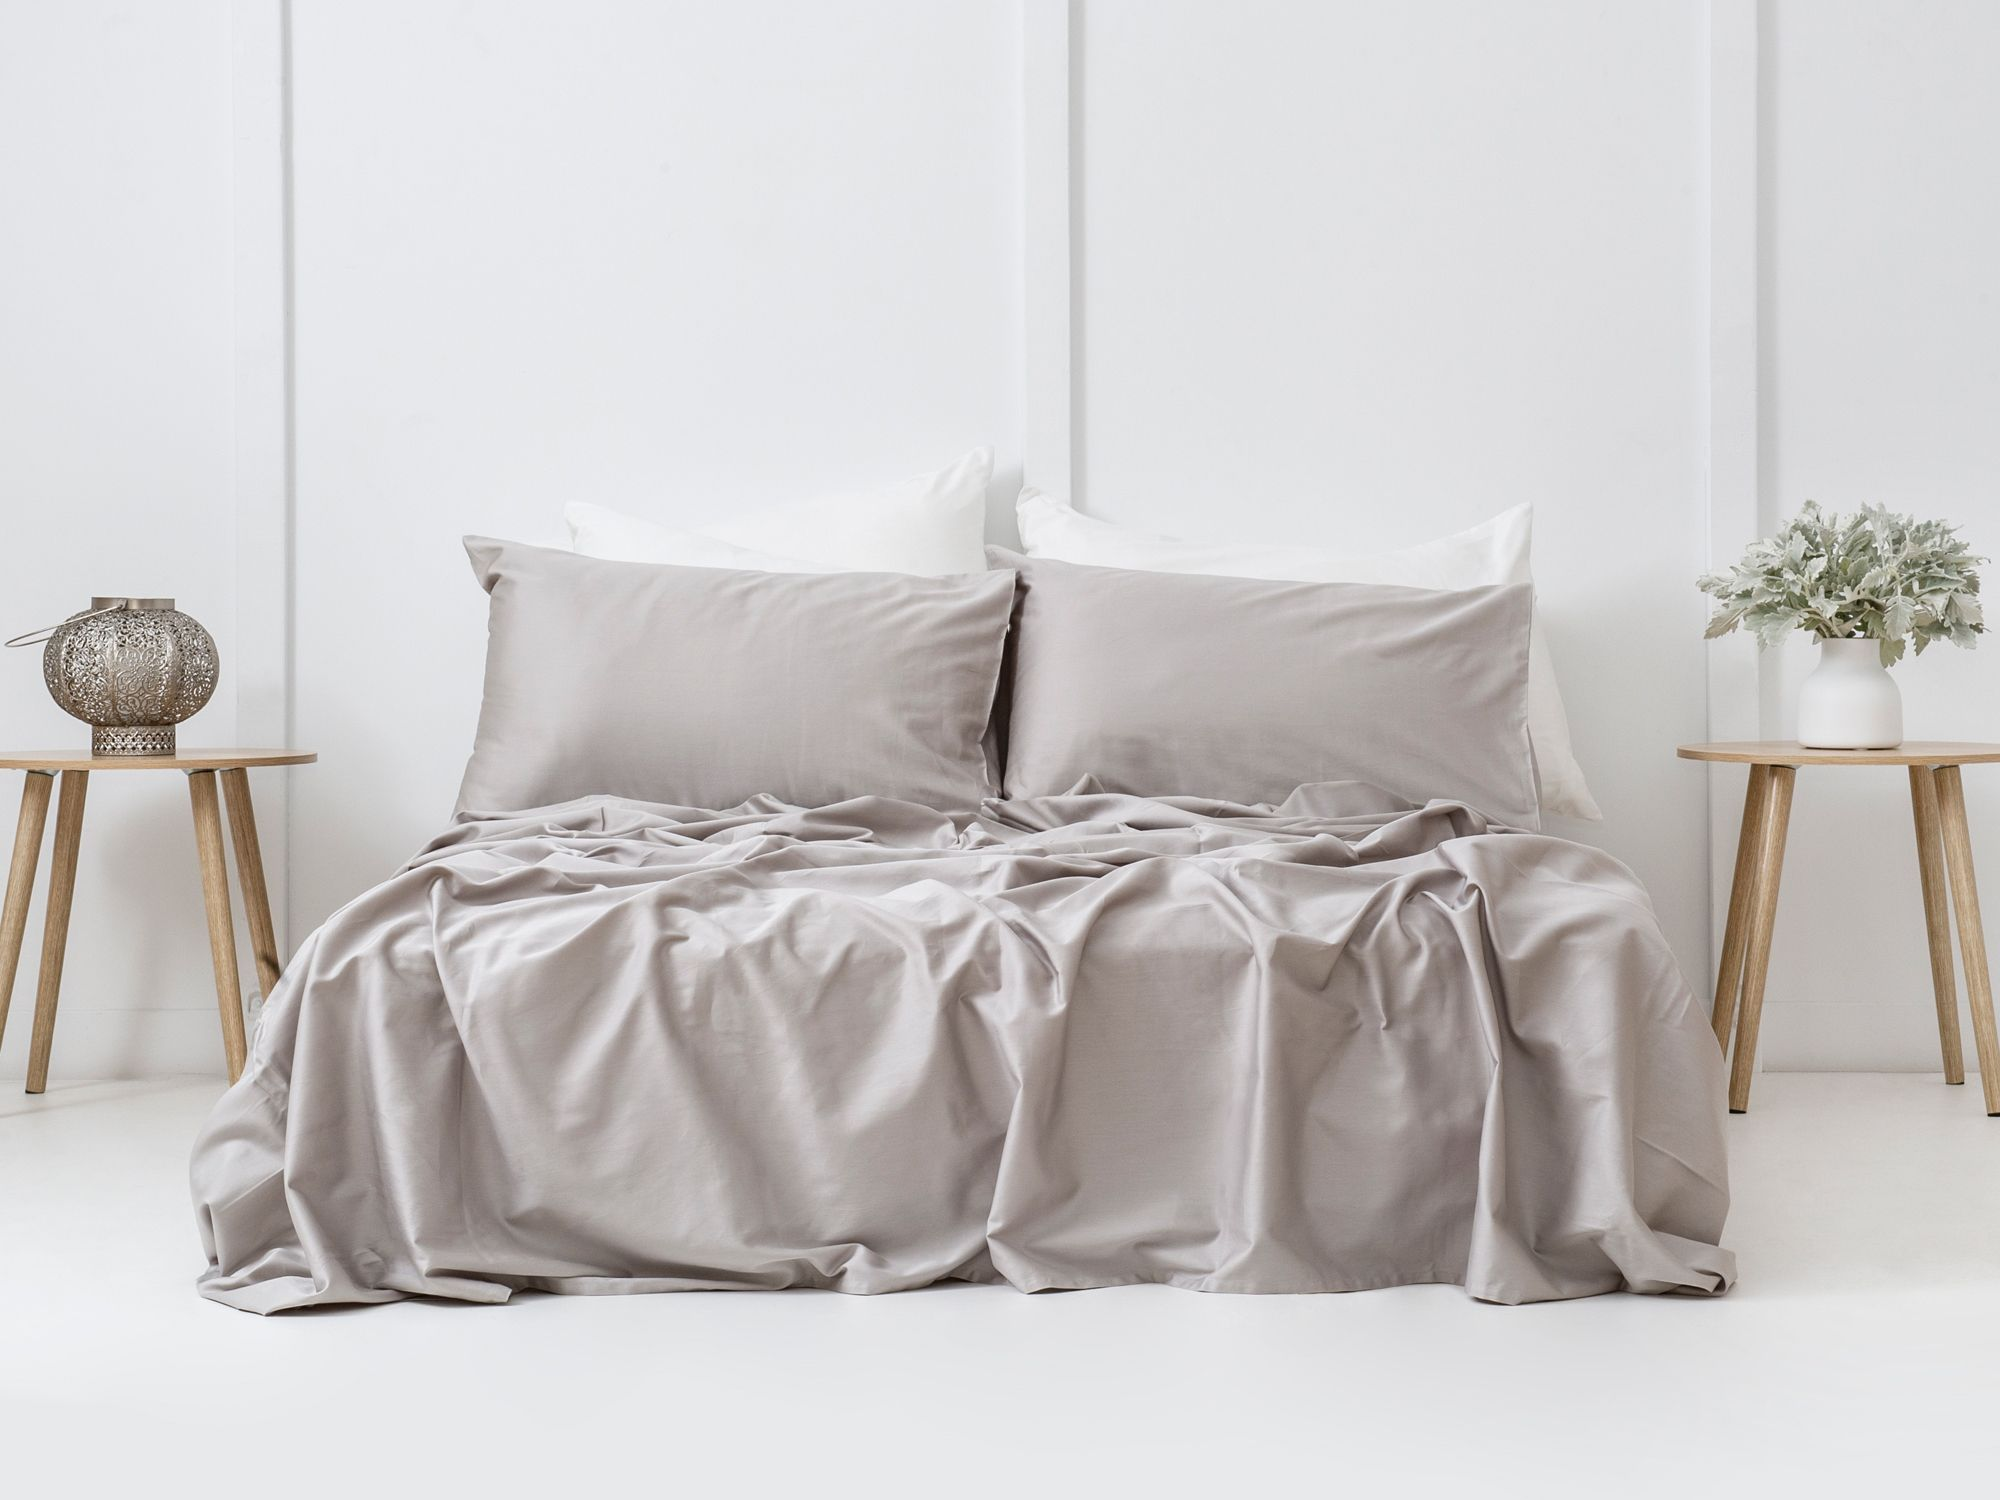 Designed with a deep gusset, the sheet set features a subtle crinkled effect (Image: Bhumi)